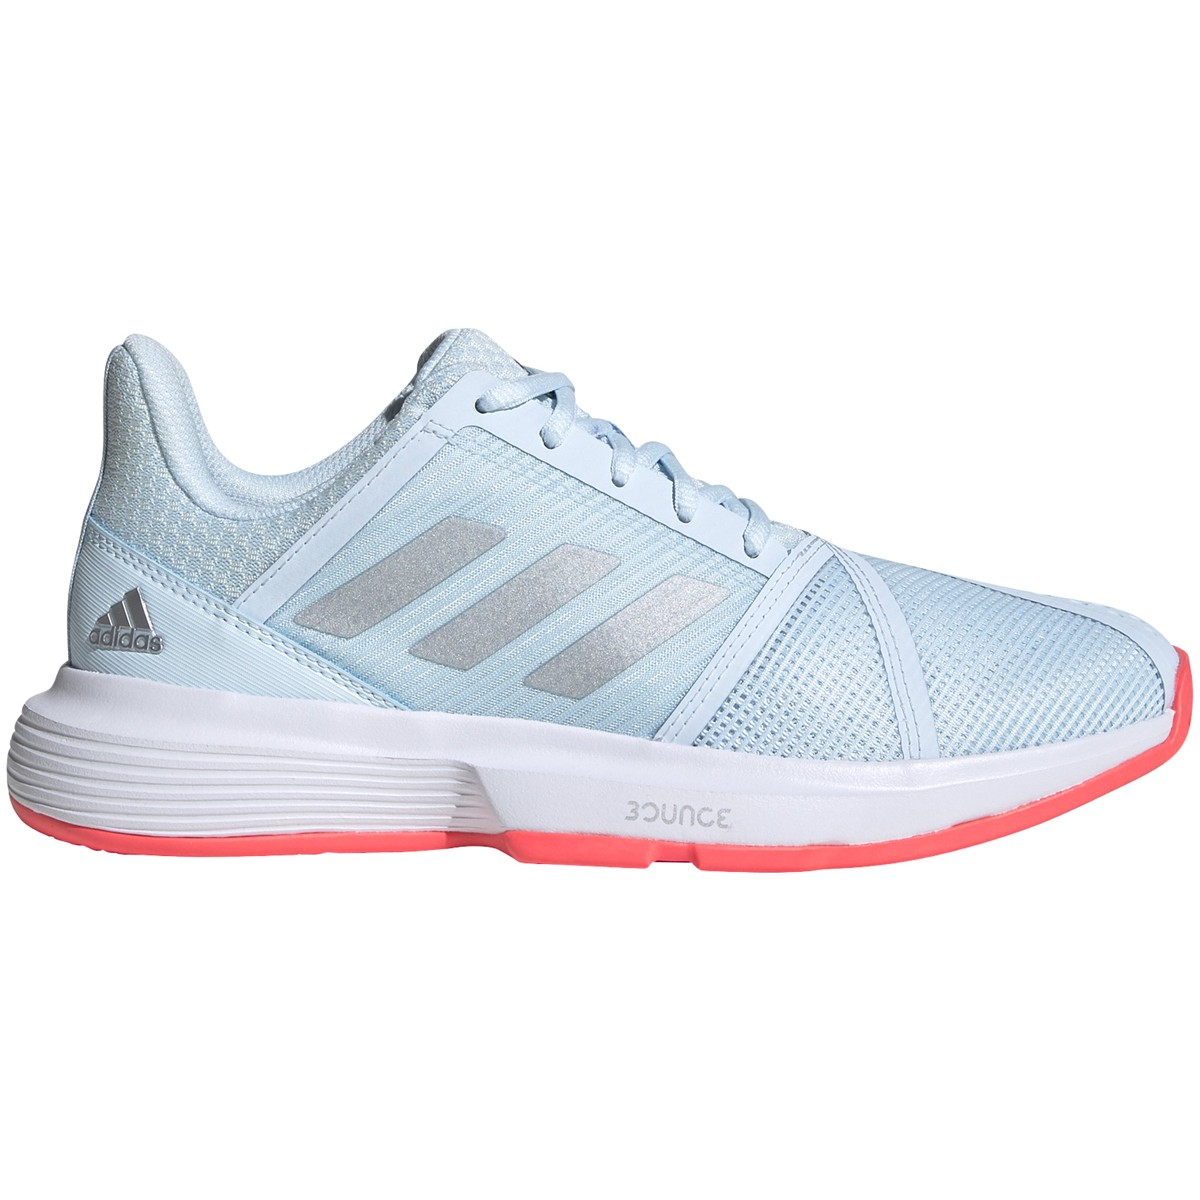 WOMEN'S ADIDAS COURTJAM BOUNCE ALL COURT SHOES - ADIDAS - Women's ...